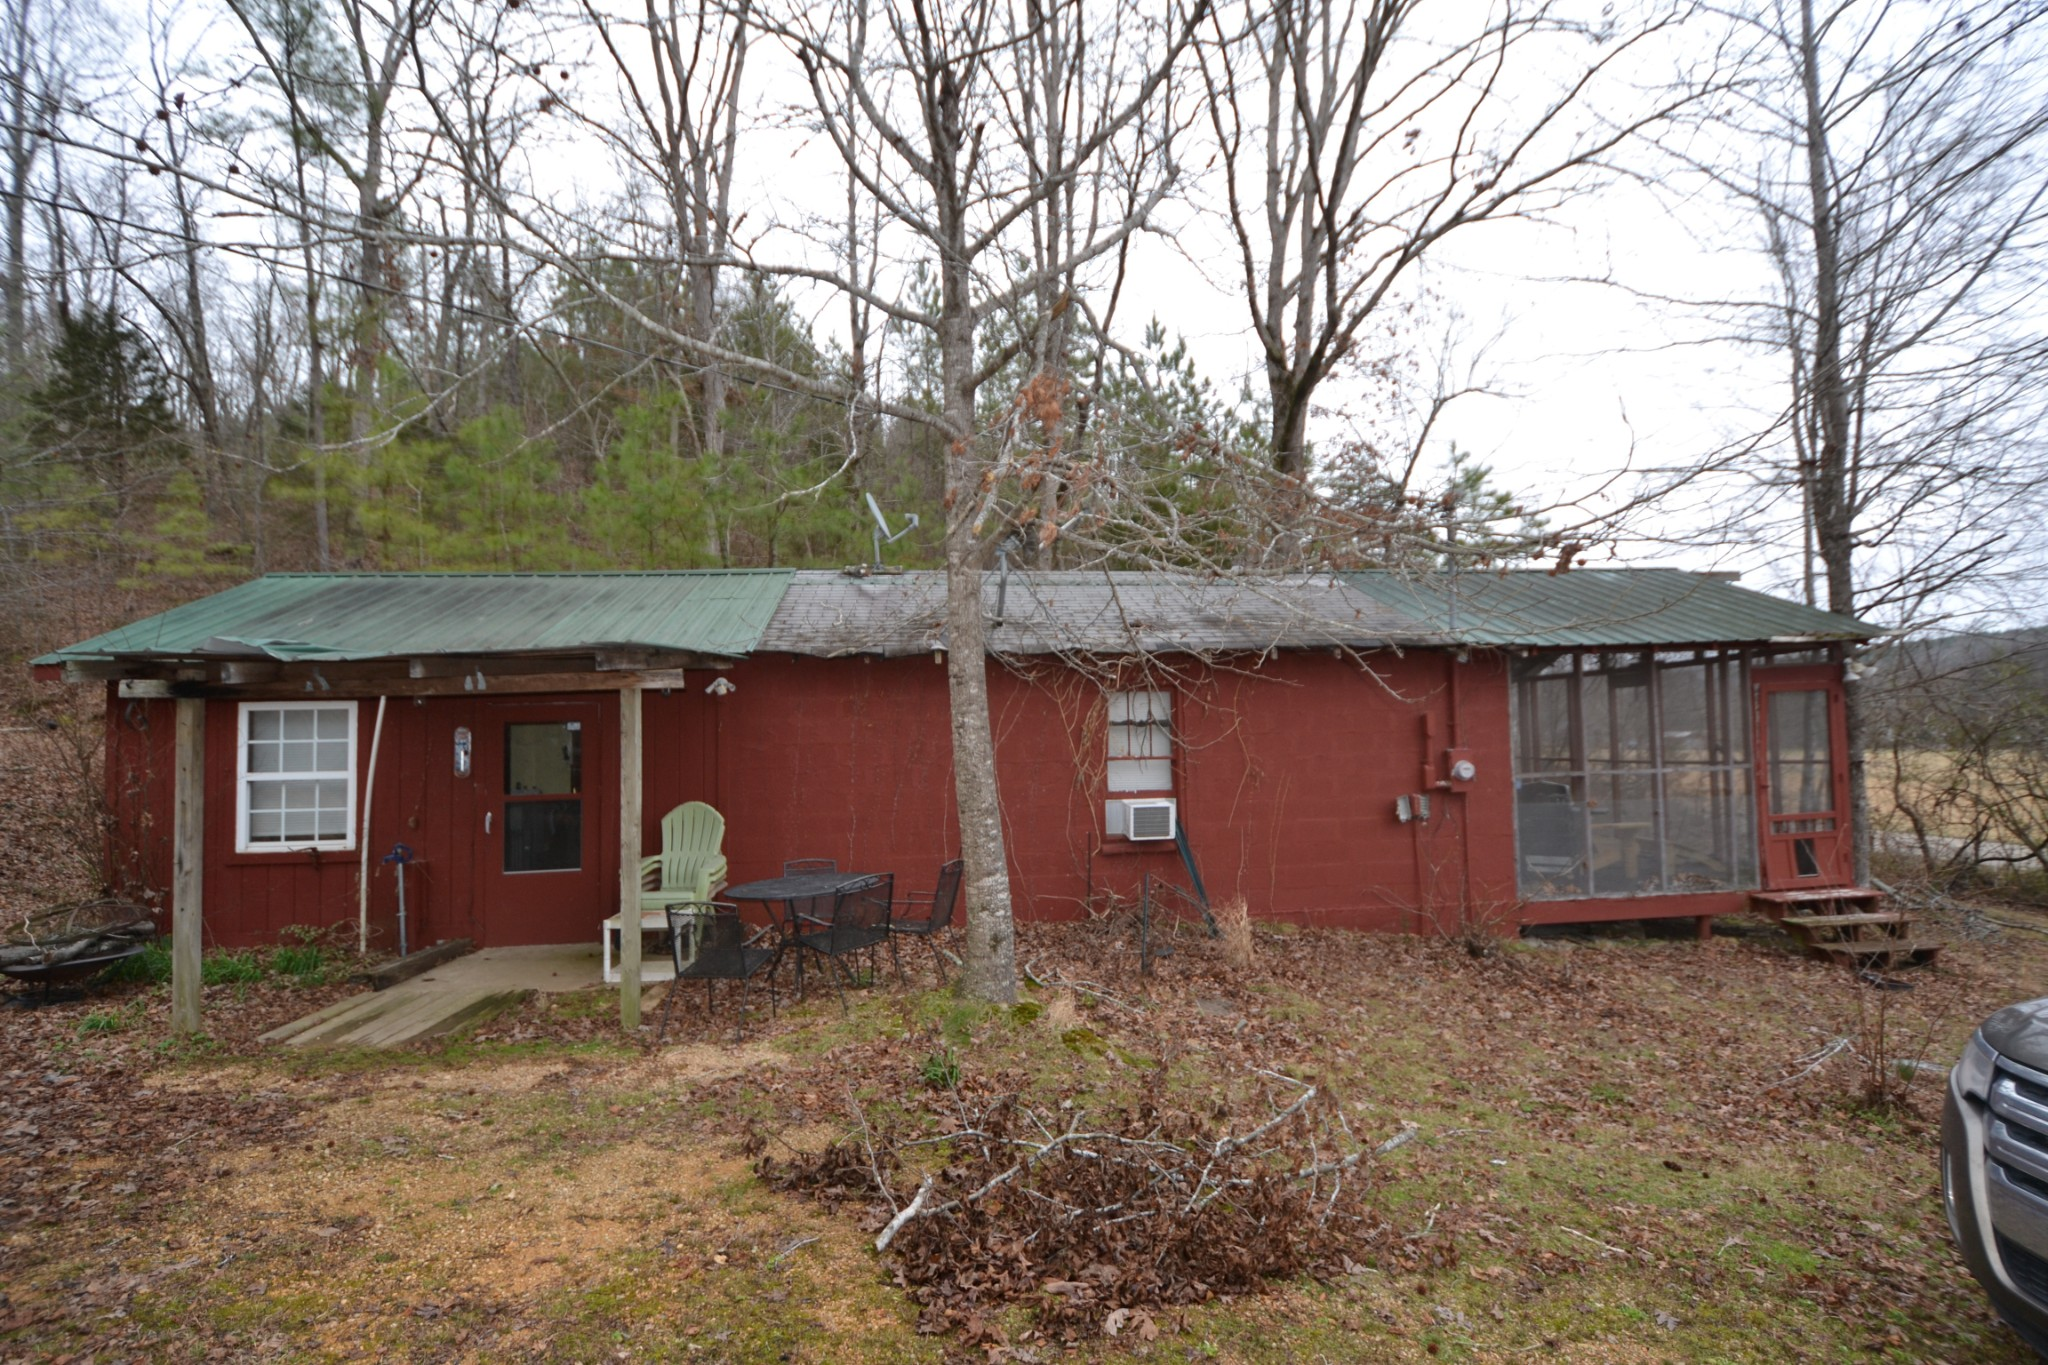 6890 Roan Creek Rd, Lobelville, TN 37097 - Lobelville, TN real estate listing